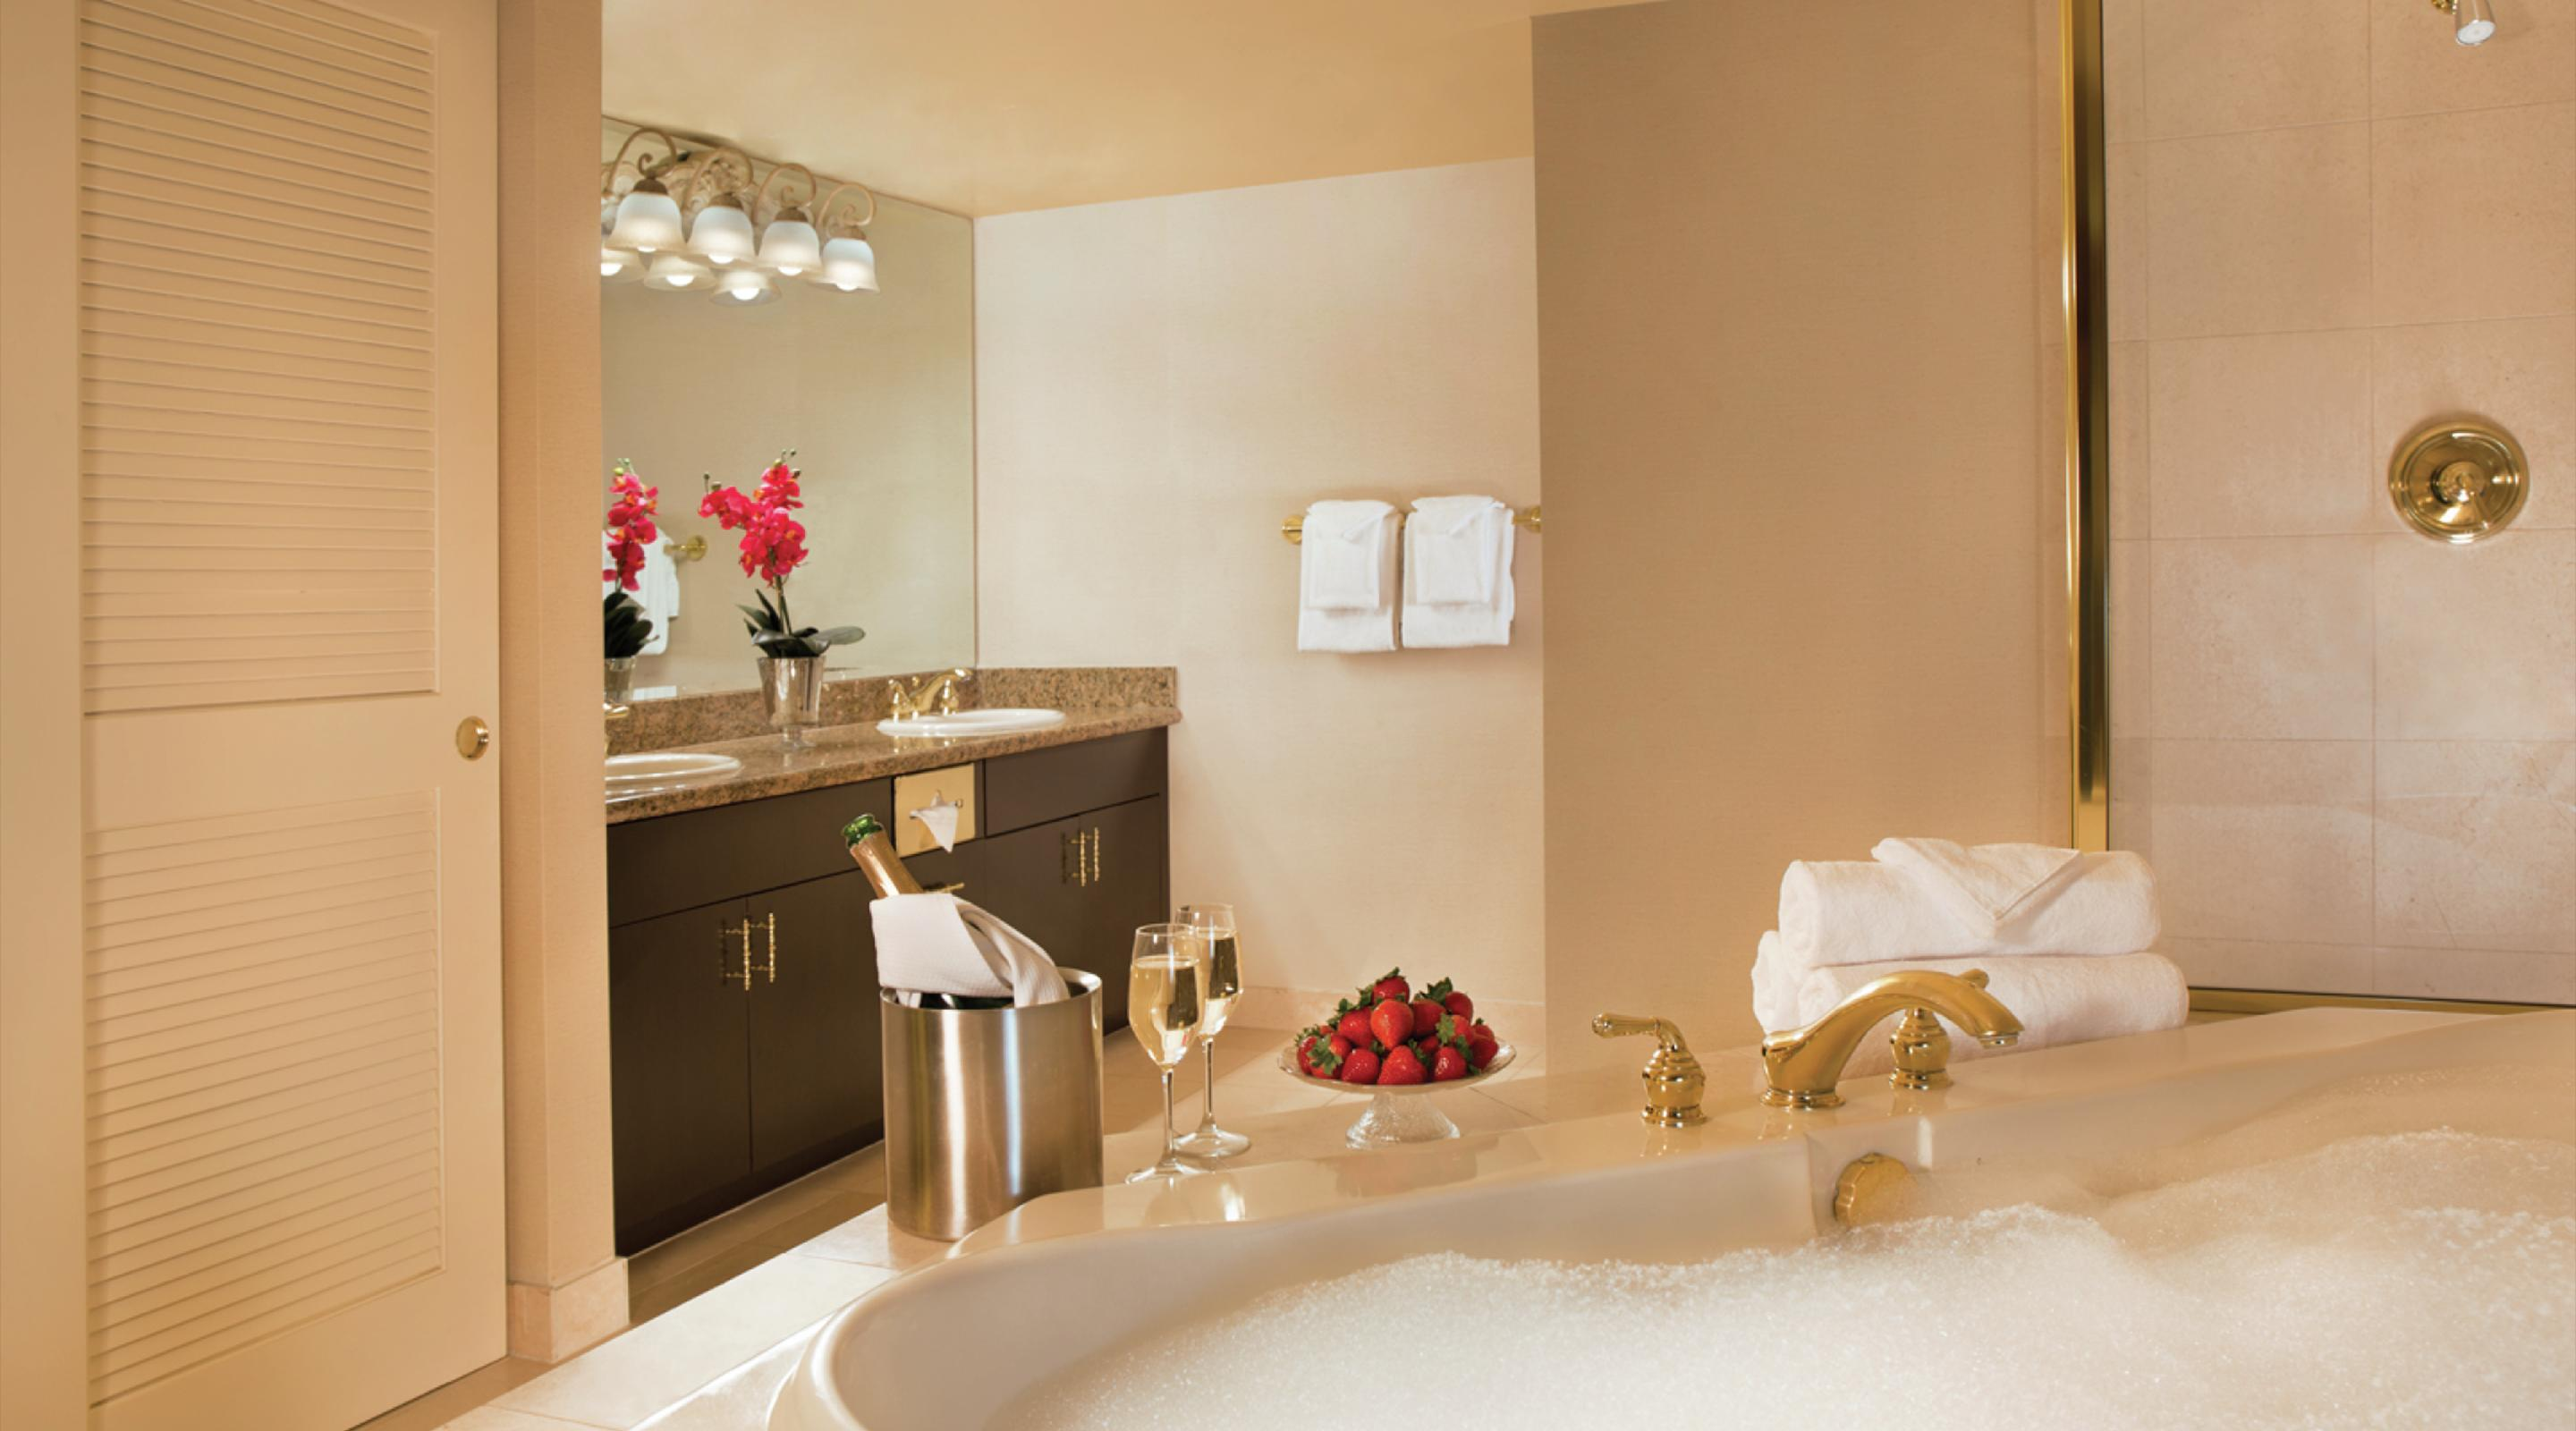 This is an image of the Royal Luxury Suite Bathroom & Soaking Tub.